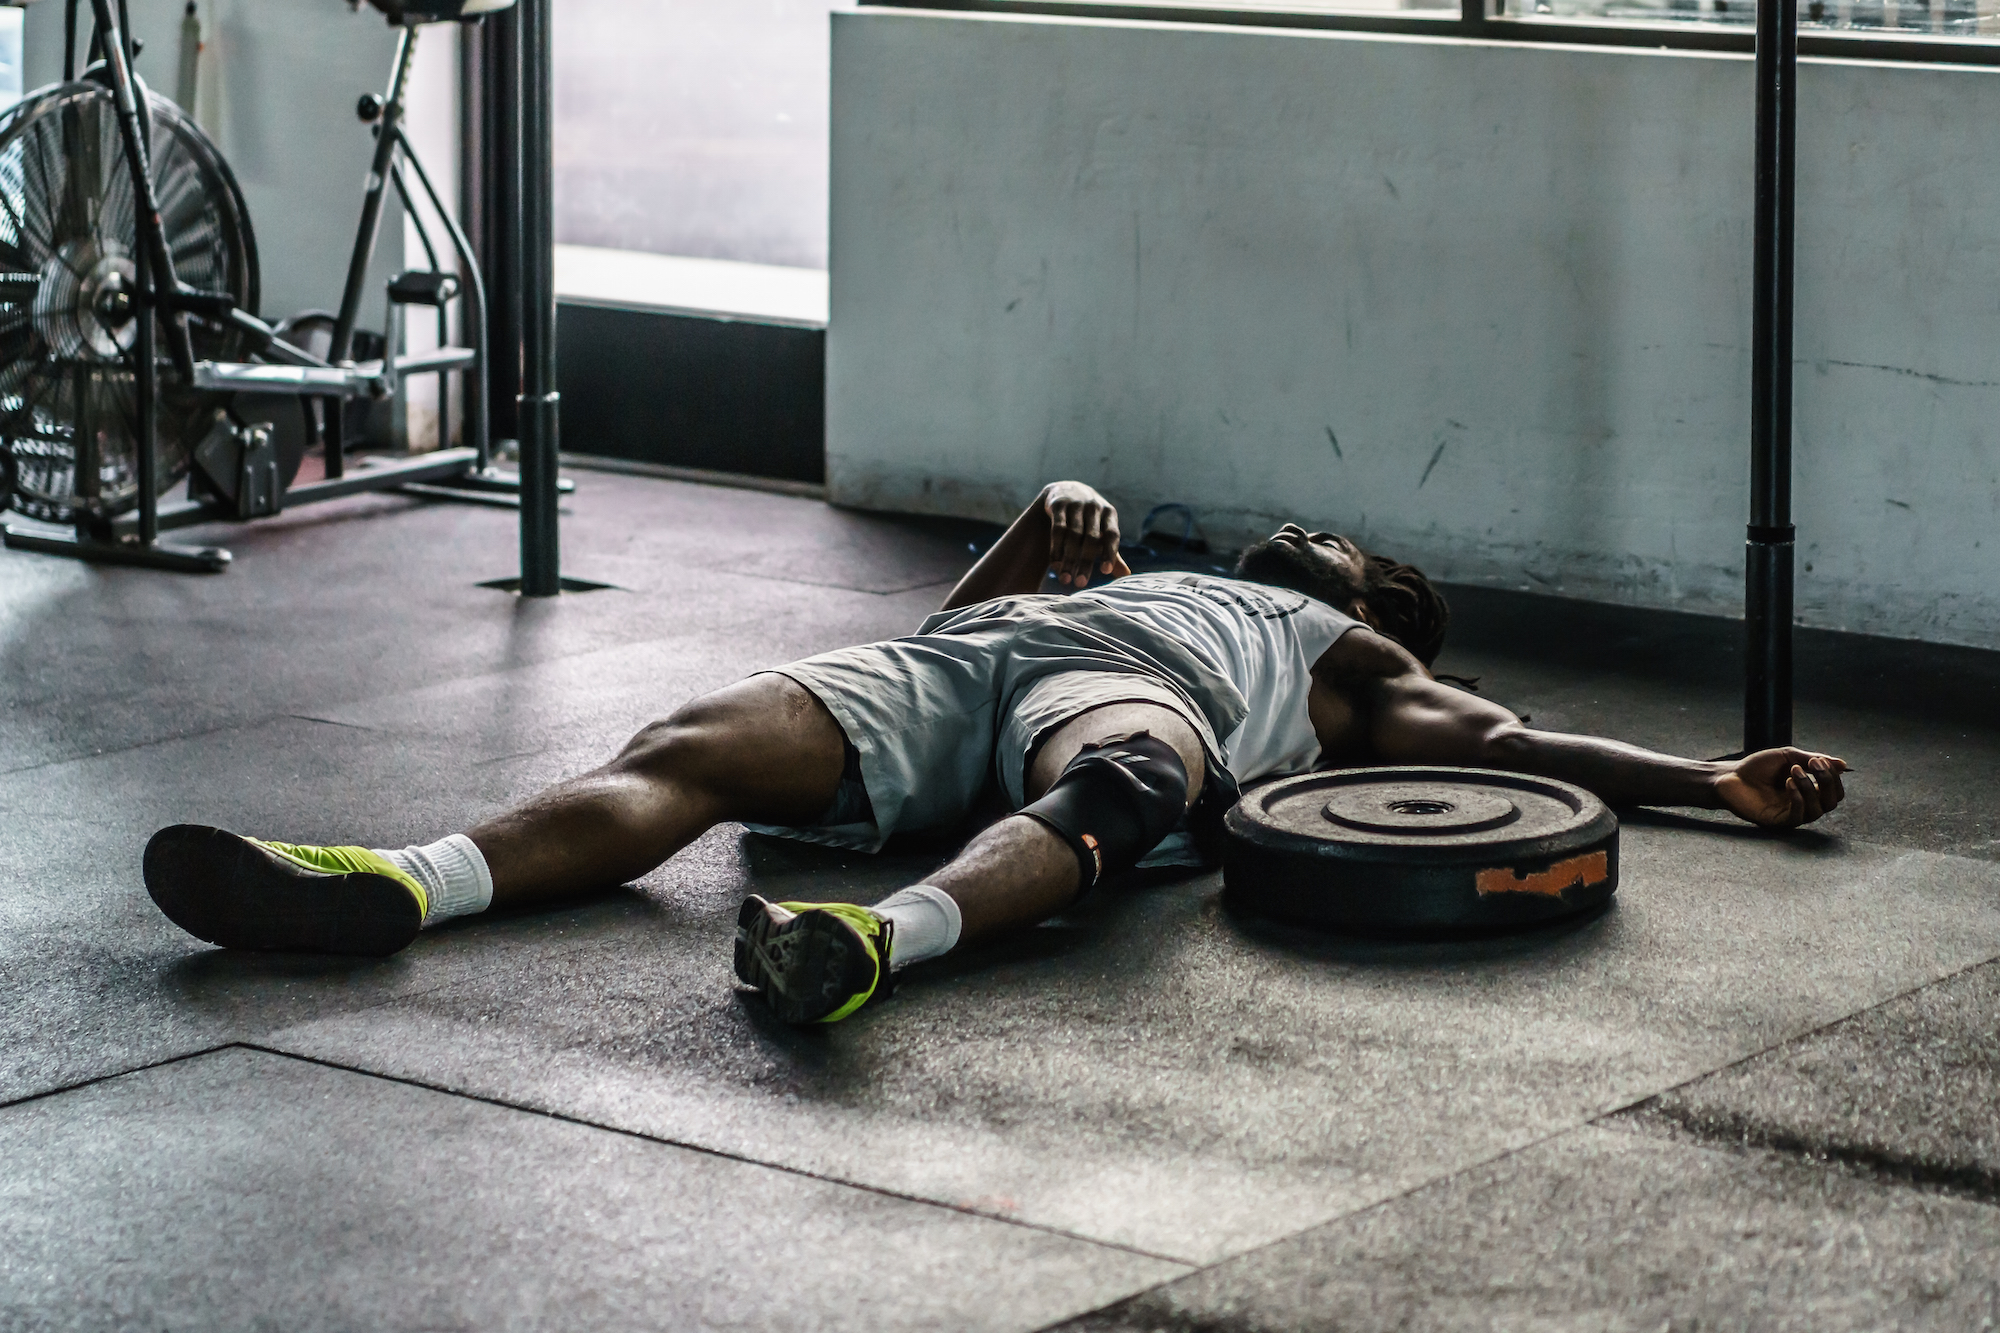 Photo from Crossfit.com